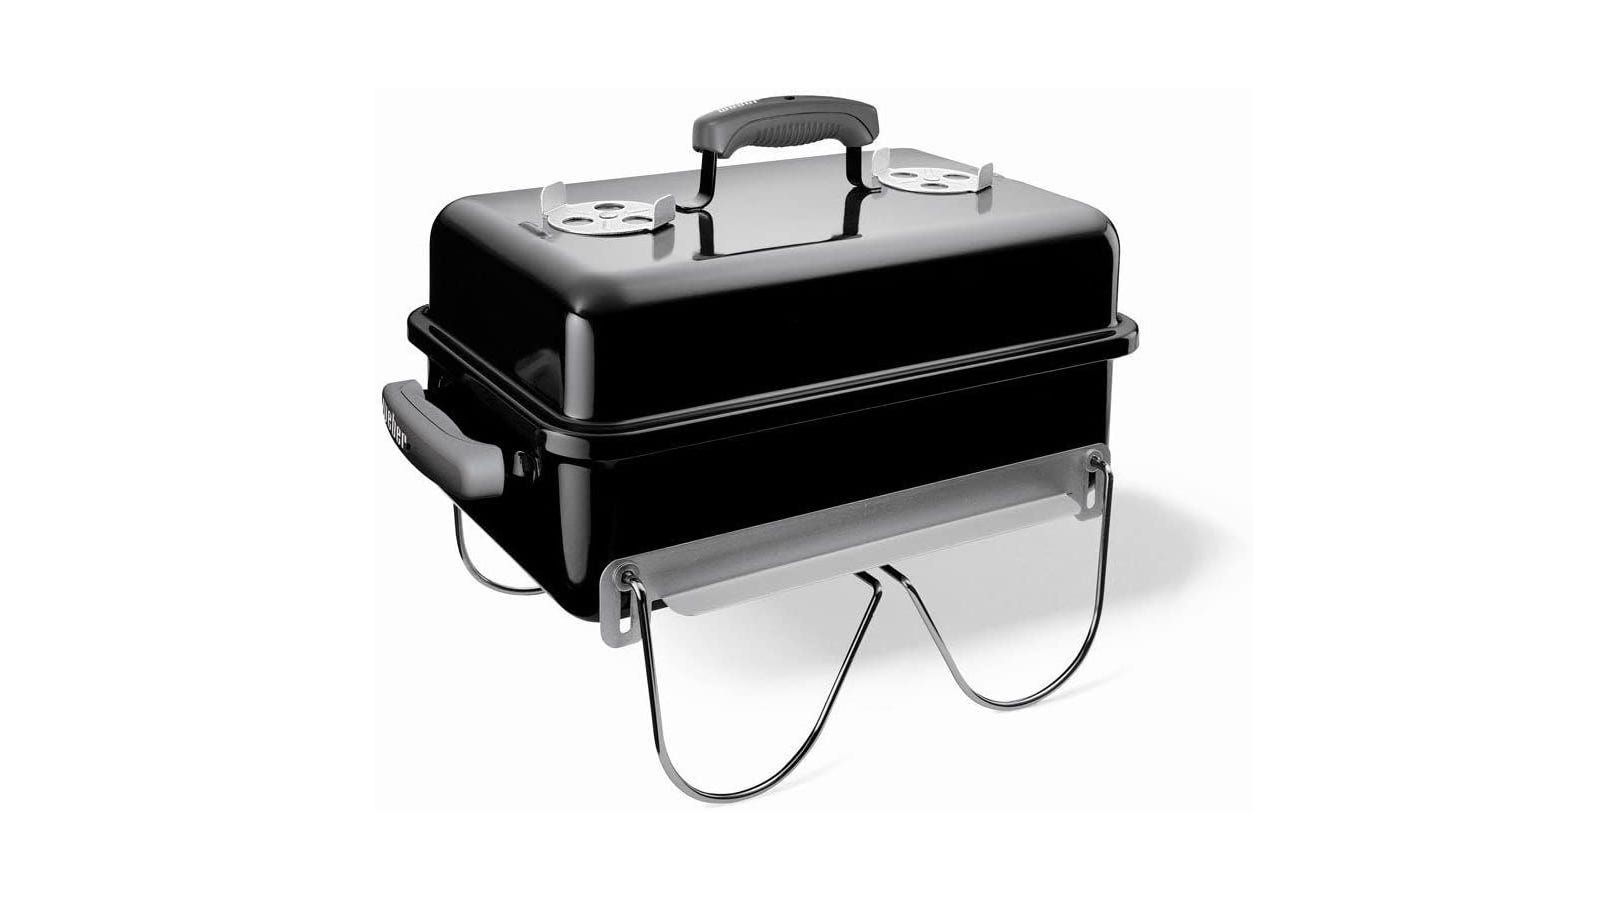 Black Weber ultra-portable charcoal grill with porcelain-enameled lid and base